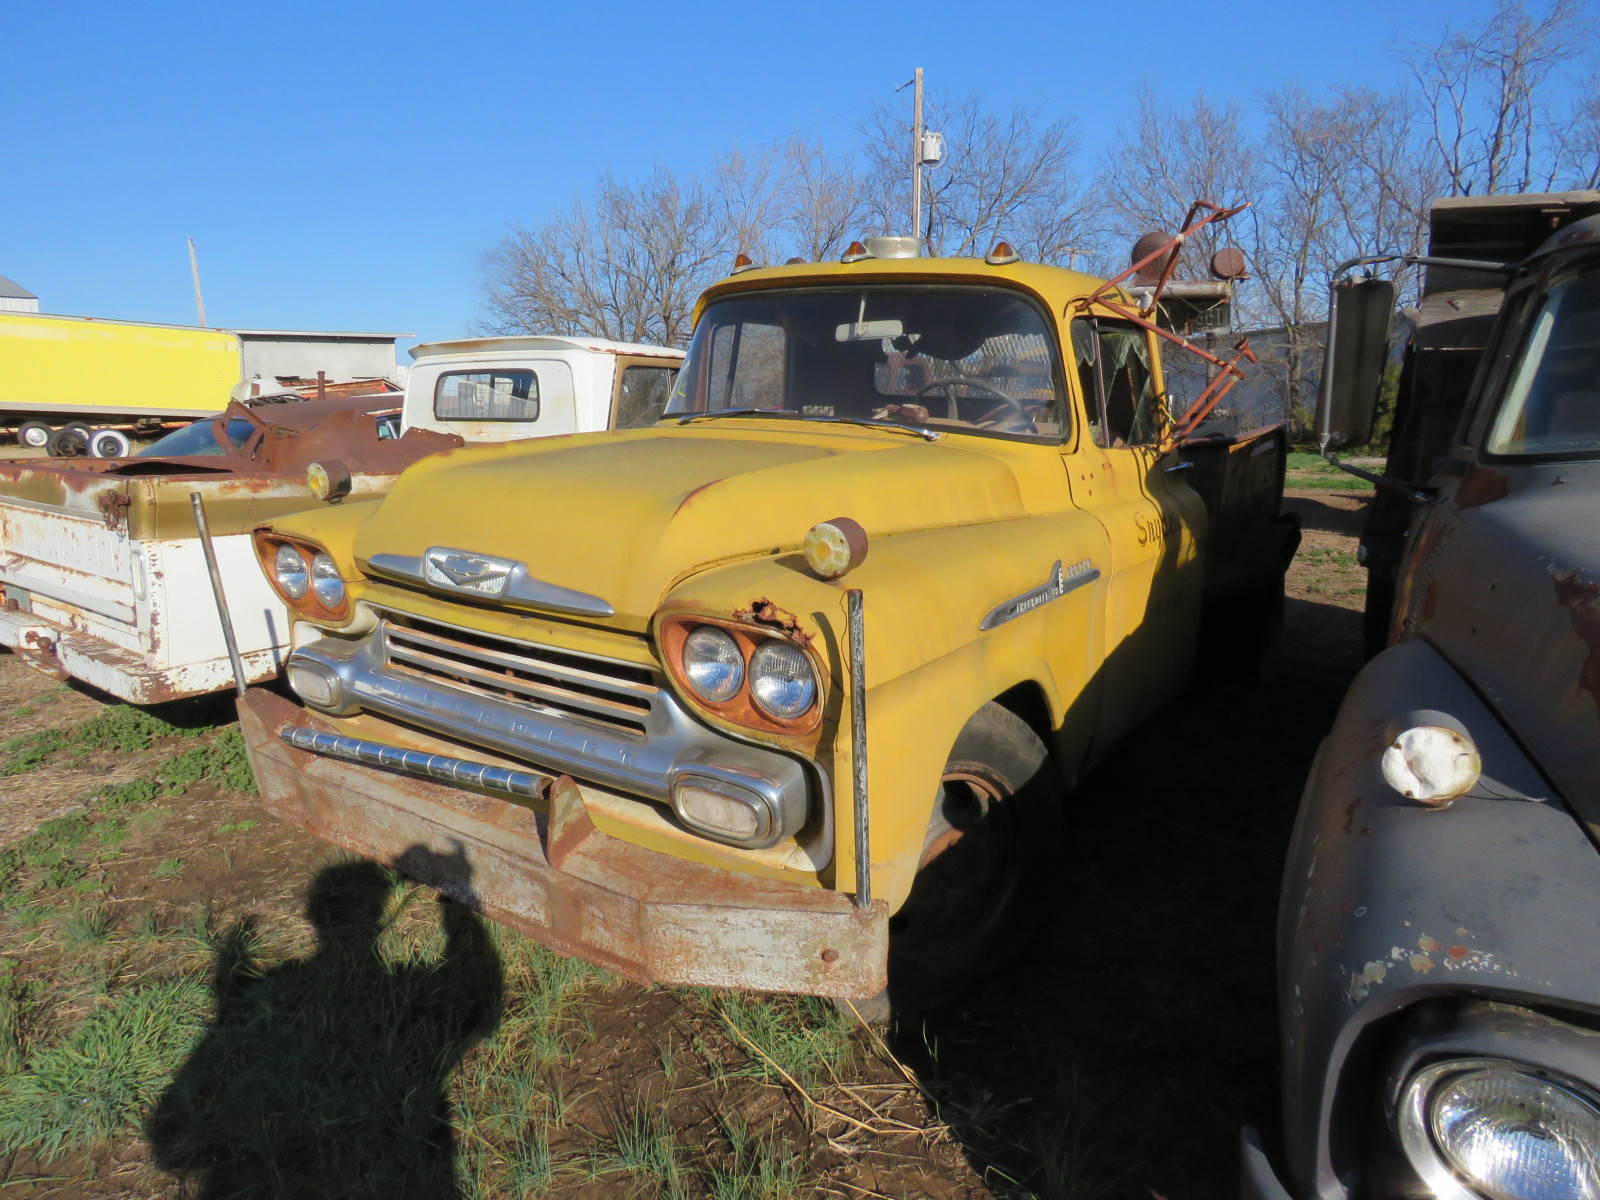 1958 Chevrolet Apache Tow Truck - Image 2